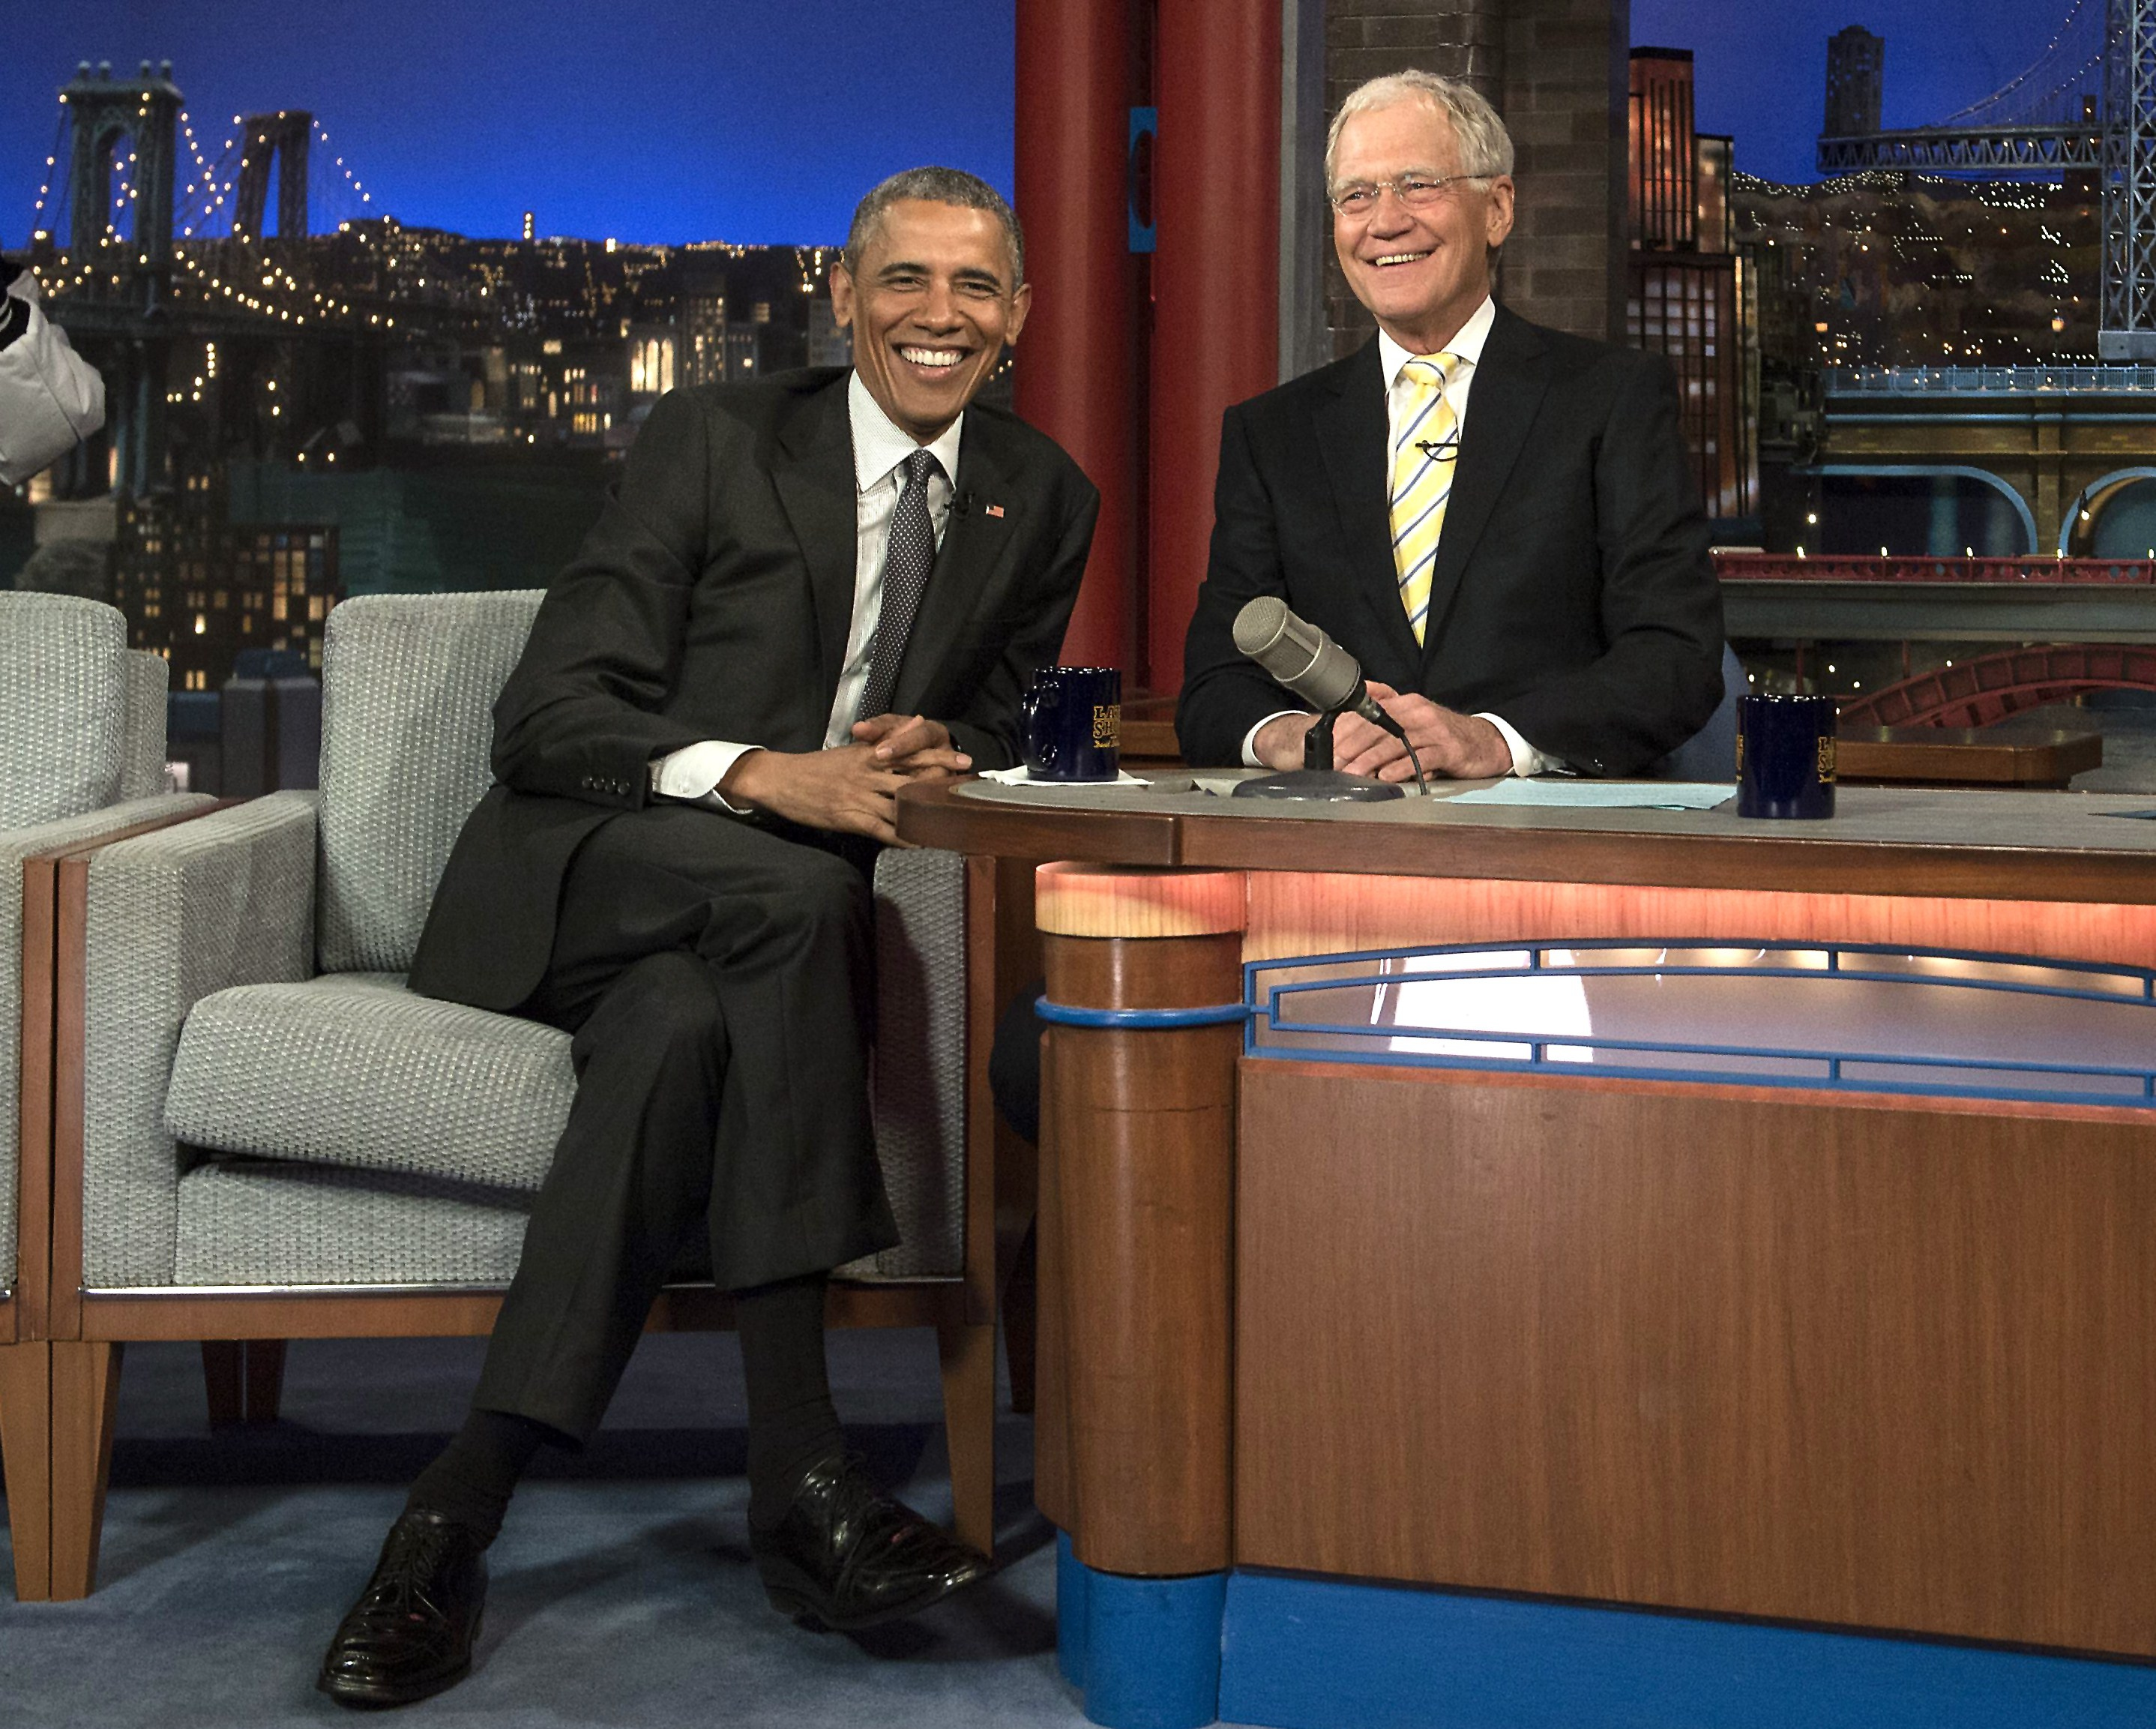 Top 10 David Letterman Lists The Beloved Staple Of Late Night Comedy Videos